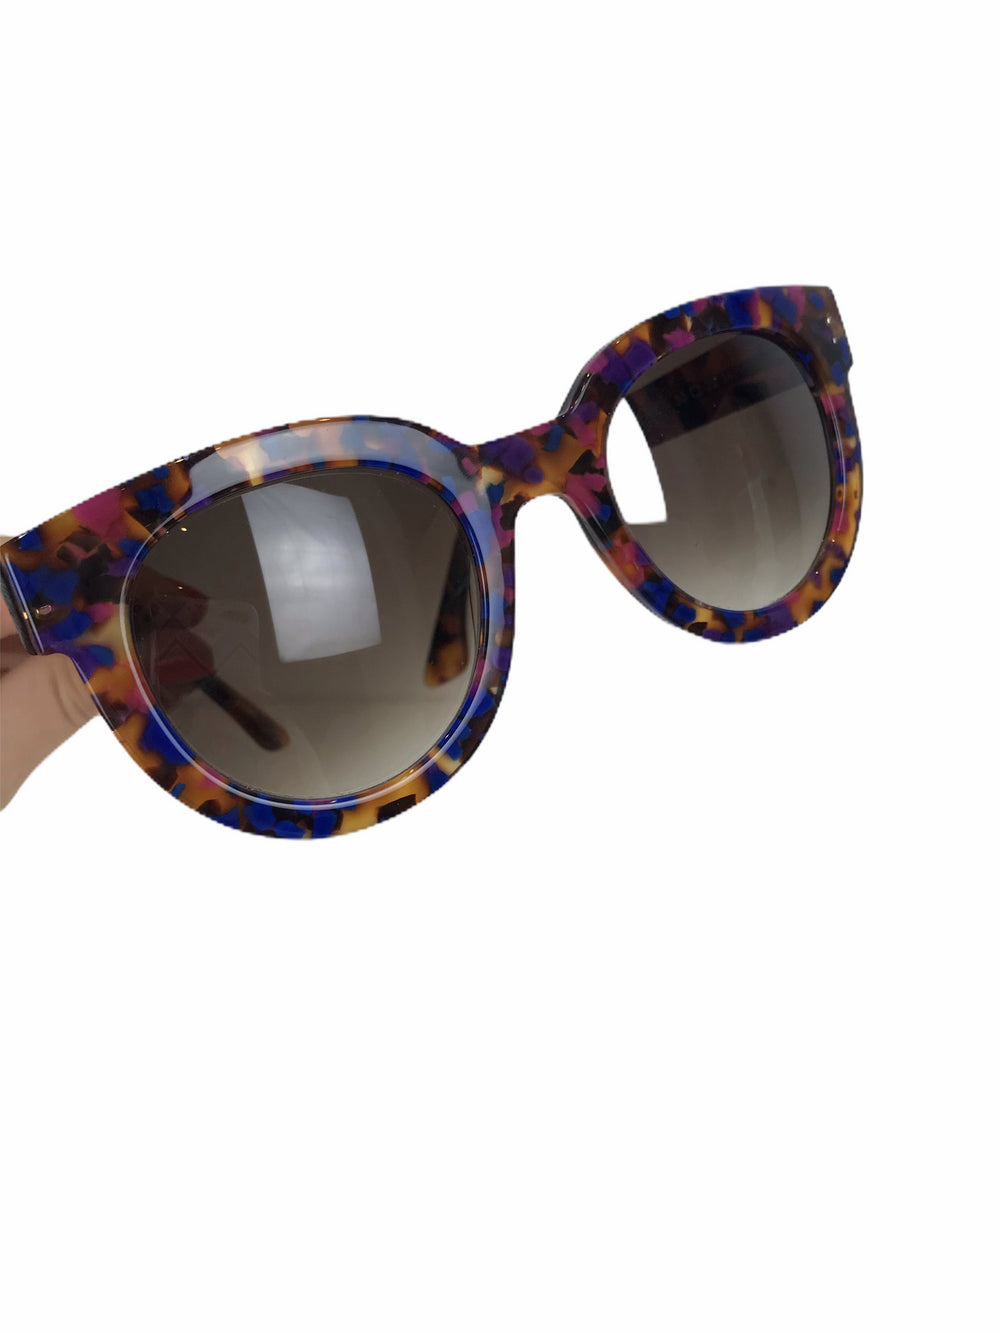 Thierry Lasry Speckled Sunglasses